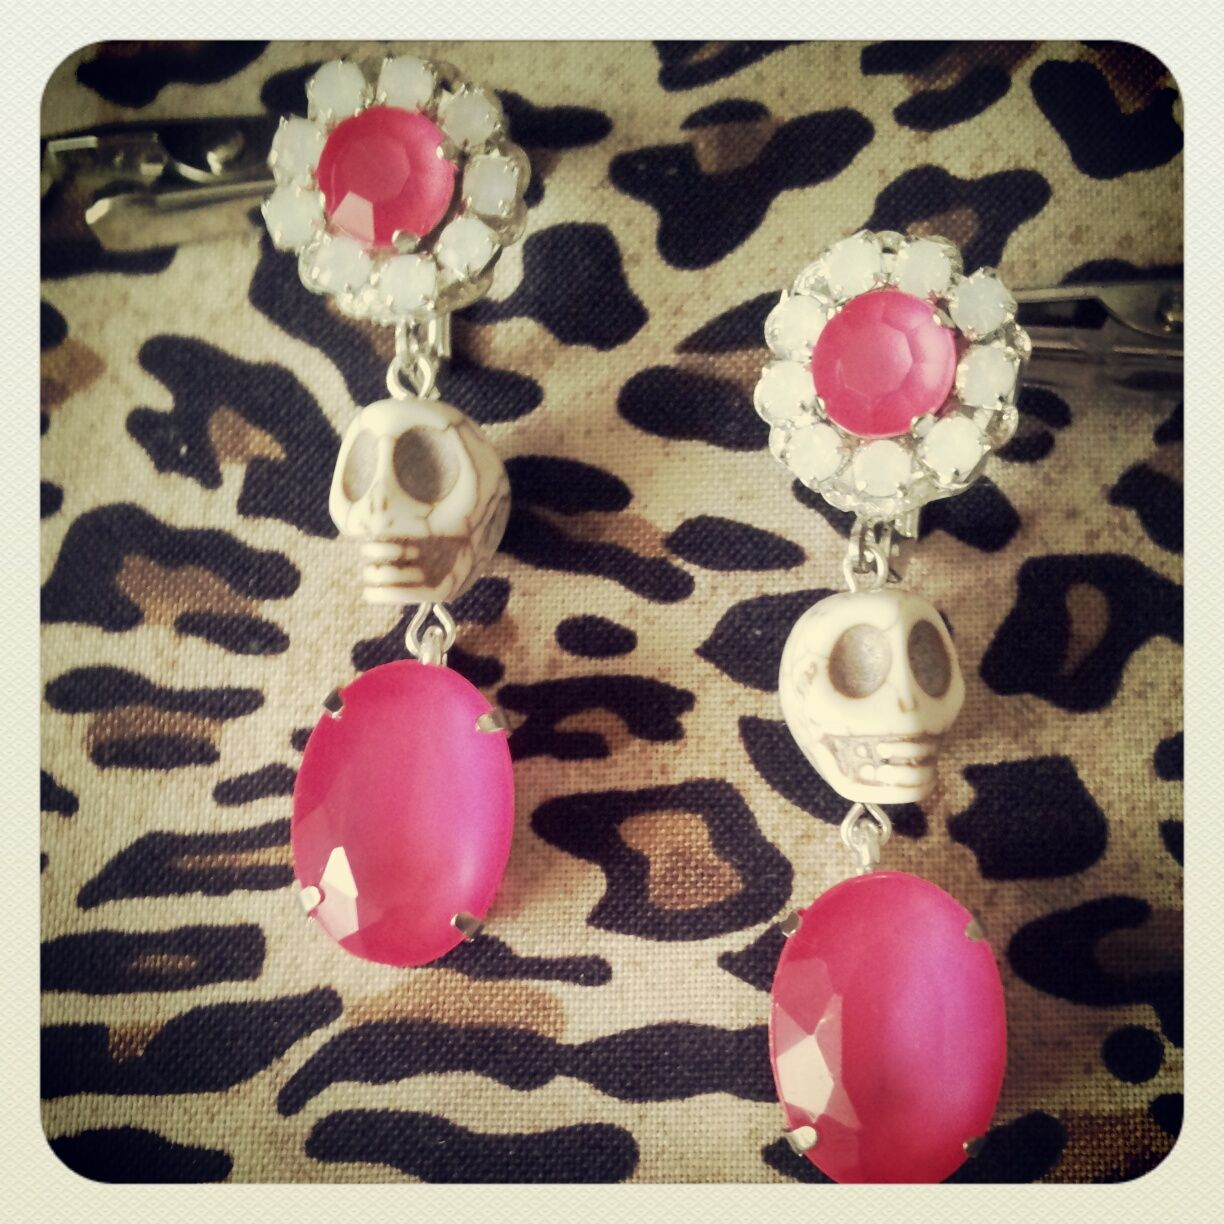 #DIY for #Marni inspired earrings. More pictures & others projects here: http://madebygenevieve.blogspot.fr/2013/01/neon-new-year-nouvelle-annee-fluo.html